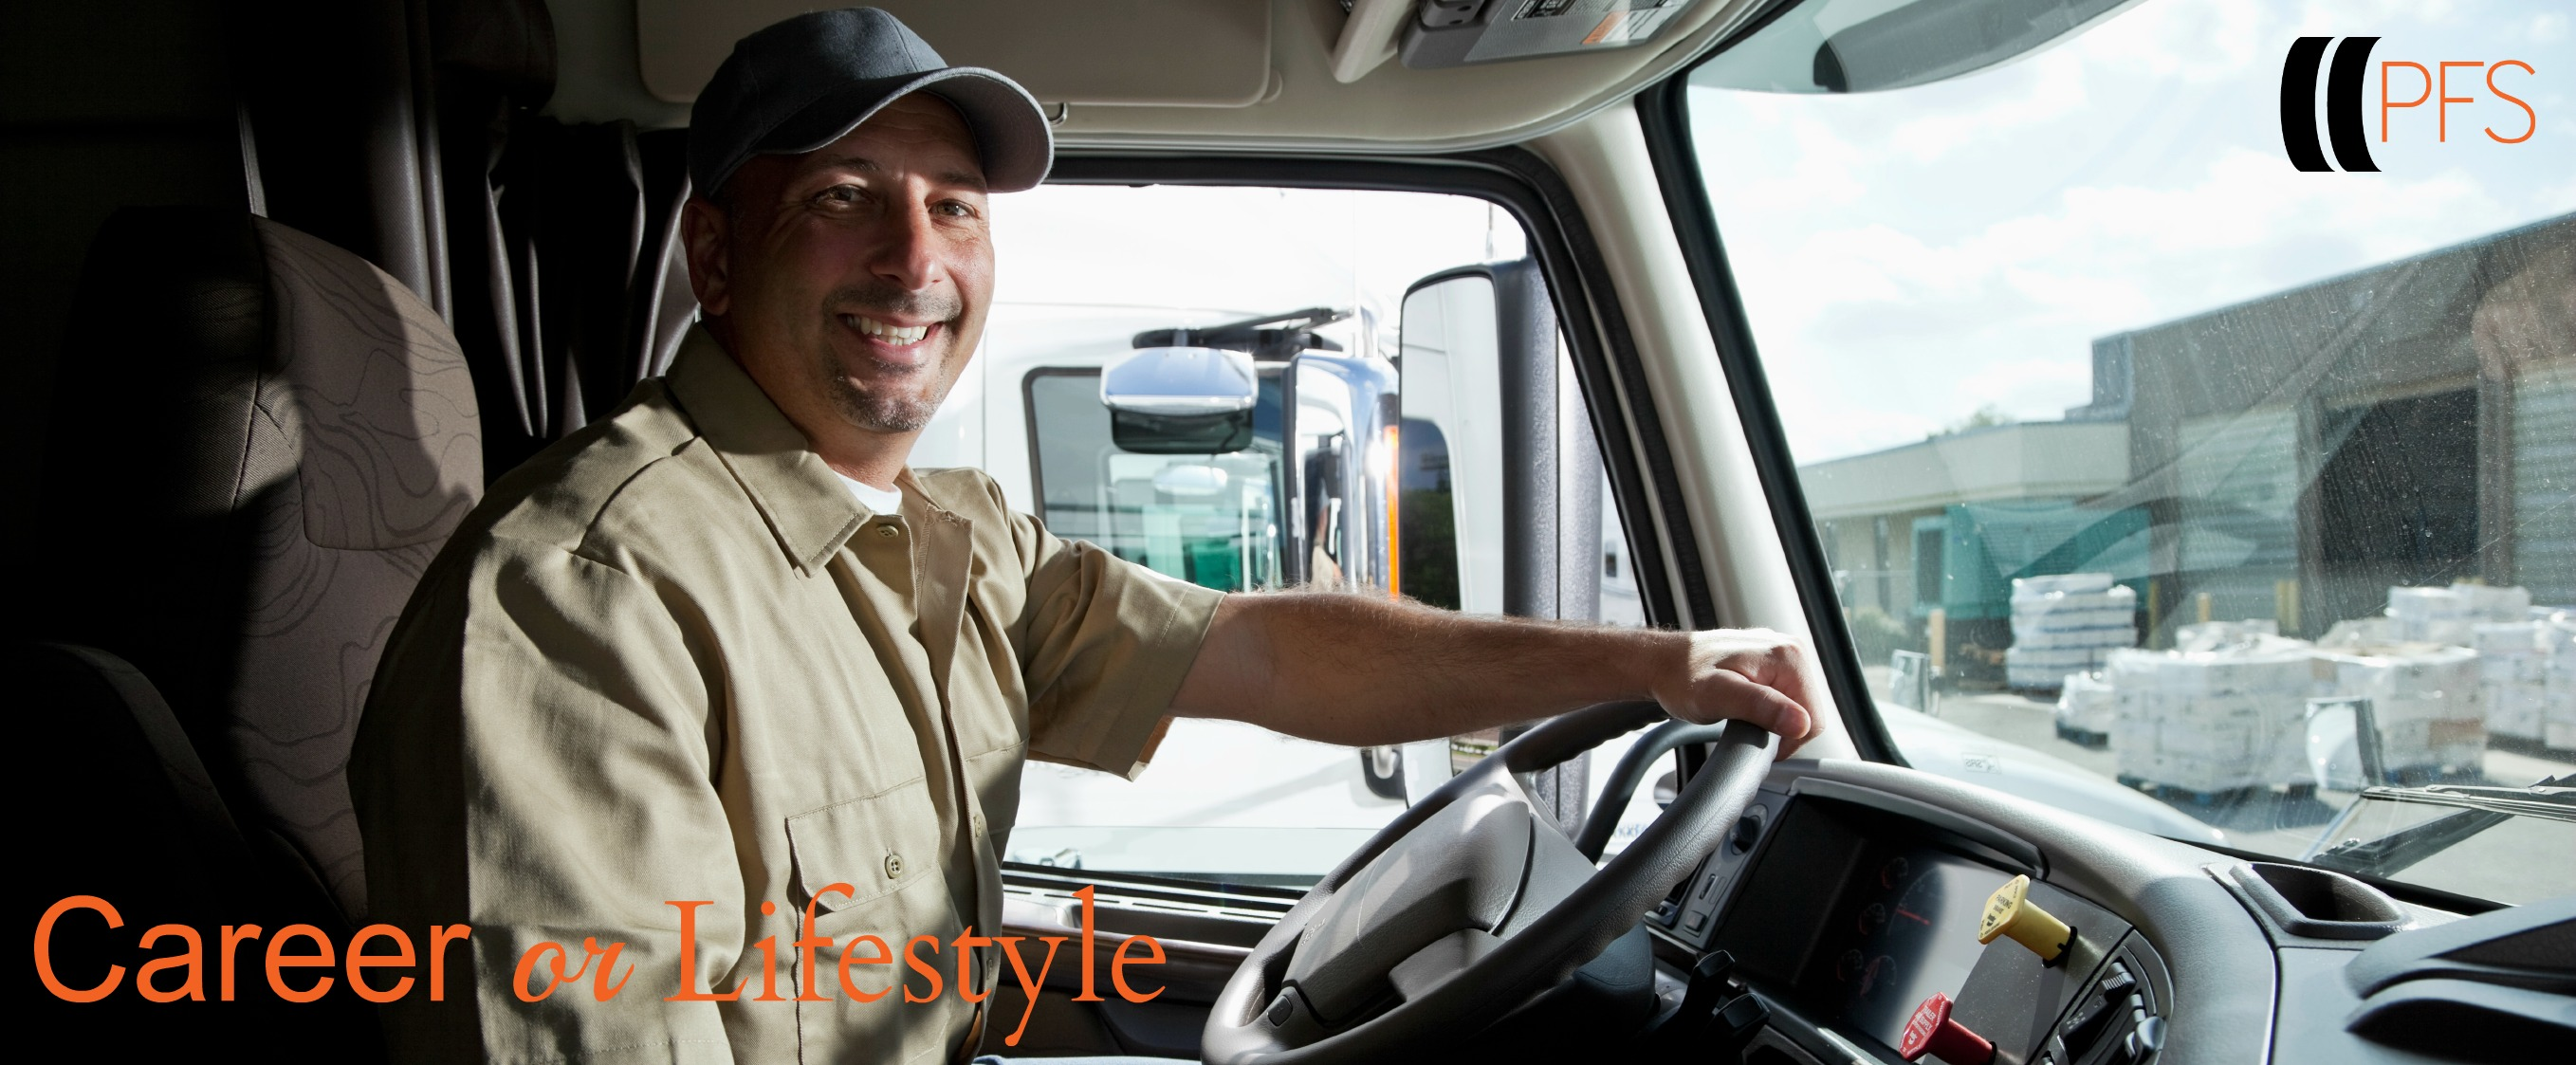 Career Trucking Trucking As A Career Or Lifestyle Drivepfs Drivepfs